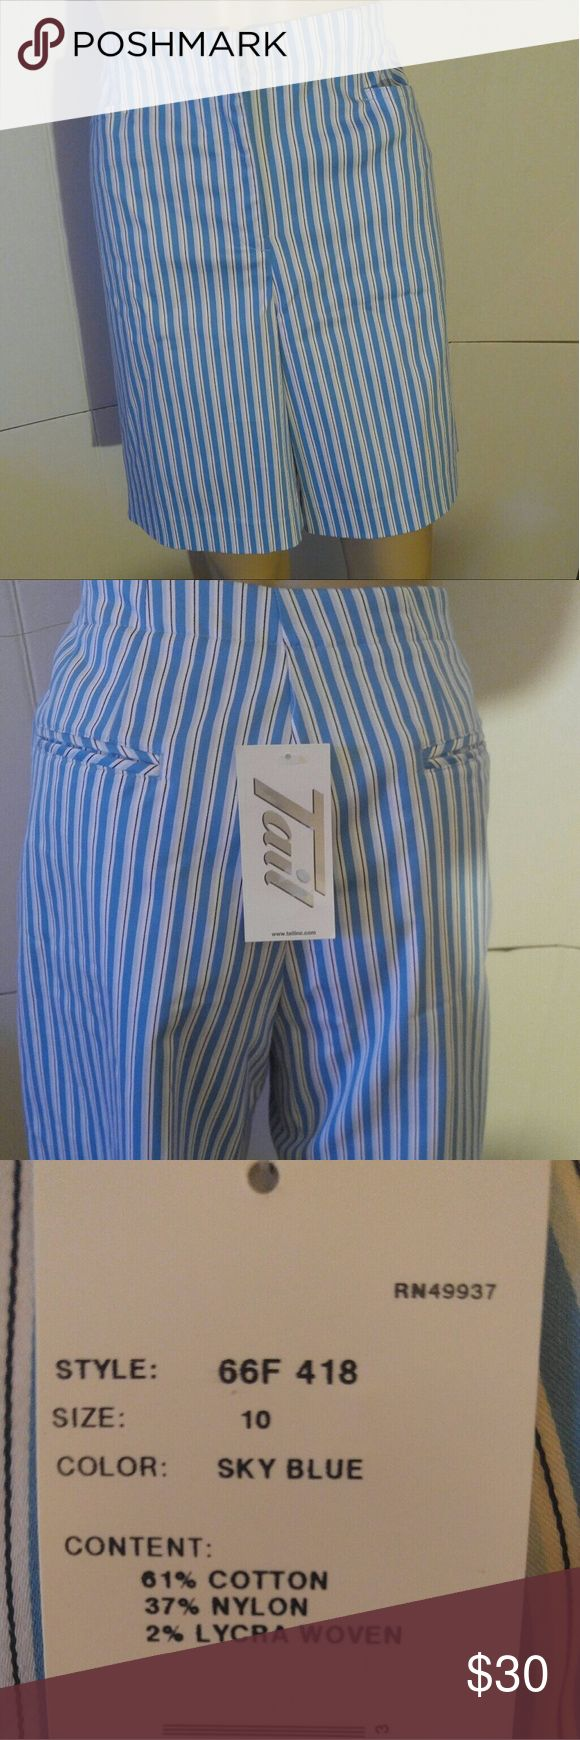 """Tail Women's Blue Shorts Size 10 Golf Blue and white stripes size 10 waist 36, 19.25 long, 8.5"""" inseam,  11"""" rise Tail Shorts"""